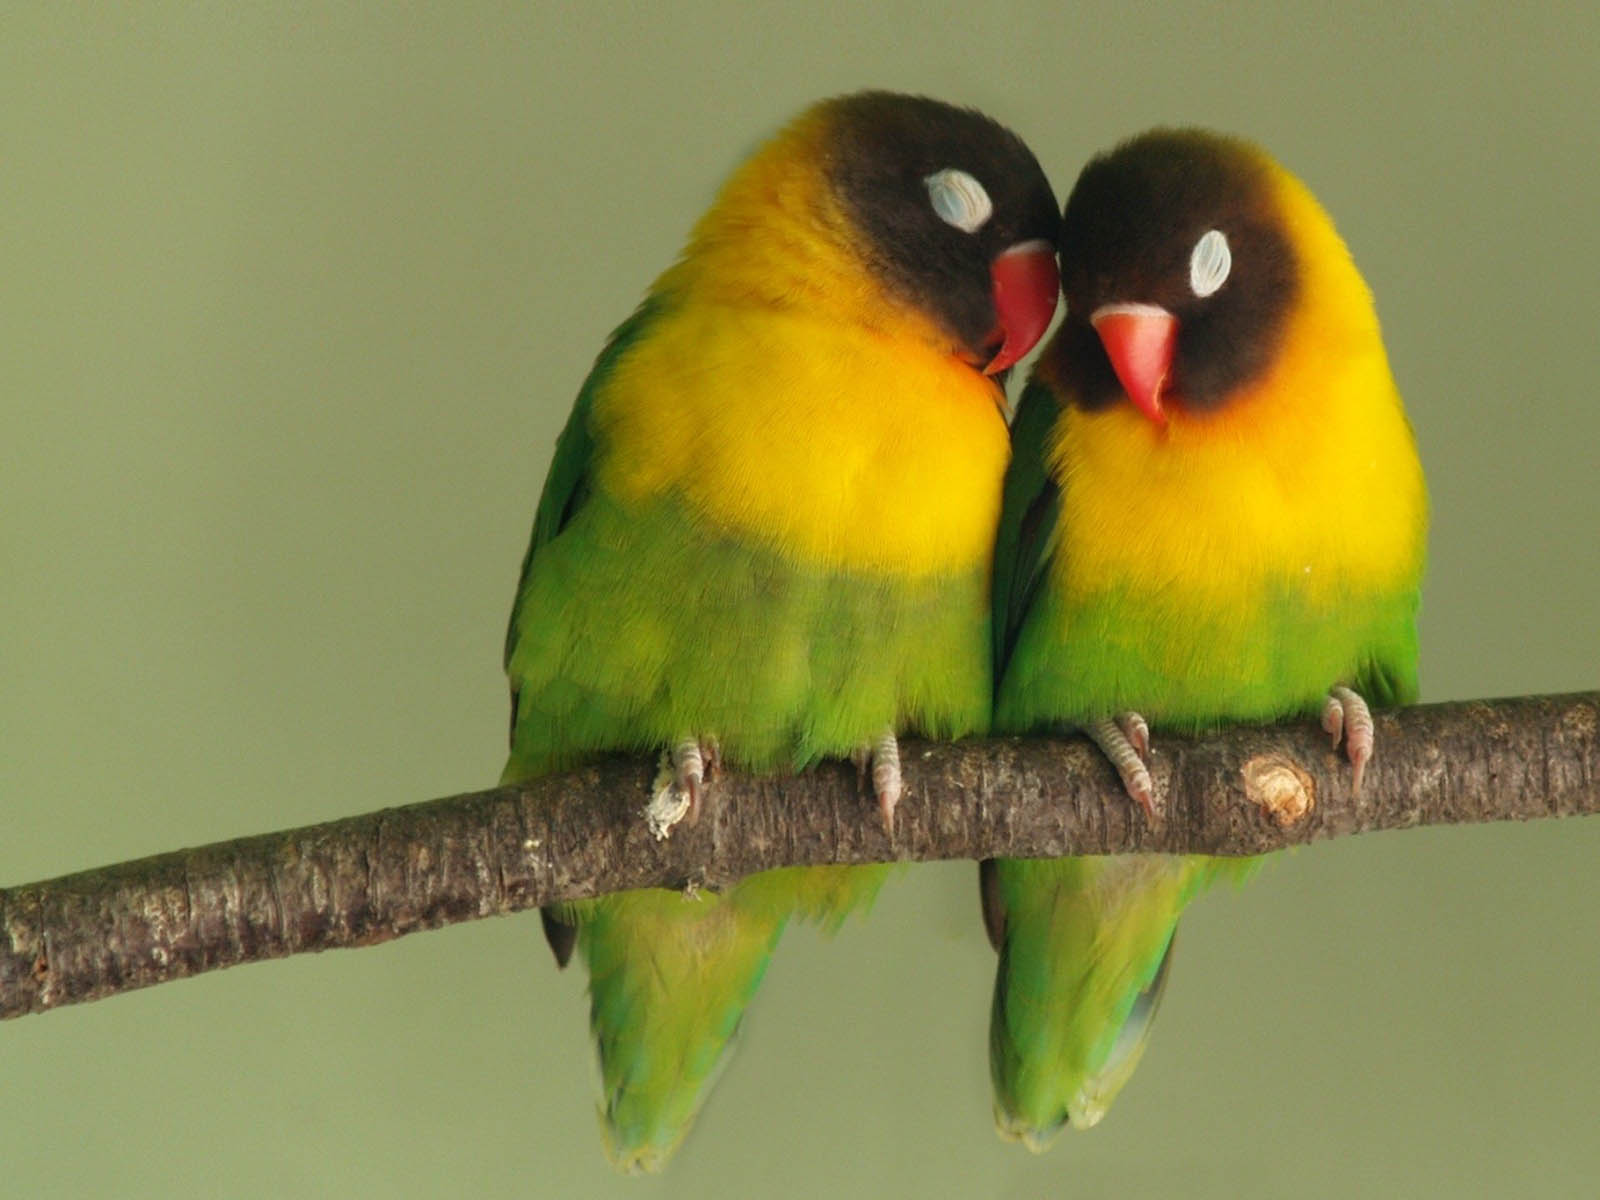 Birds Wallpapers, Backgrounds, Photos, Images and Pictures for free